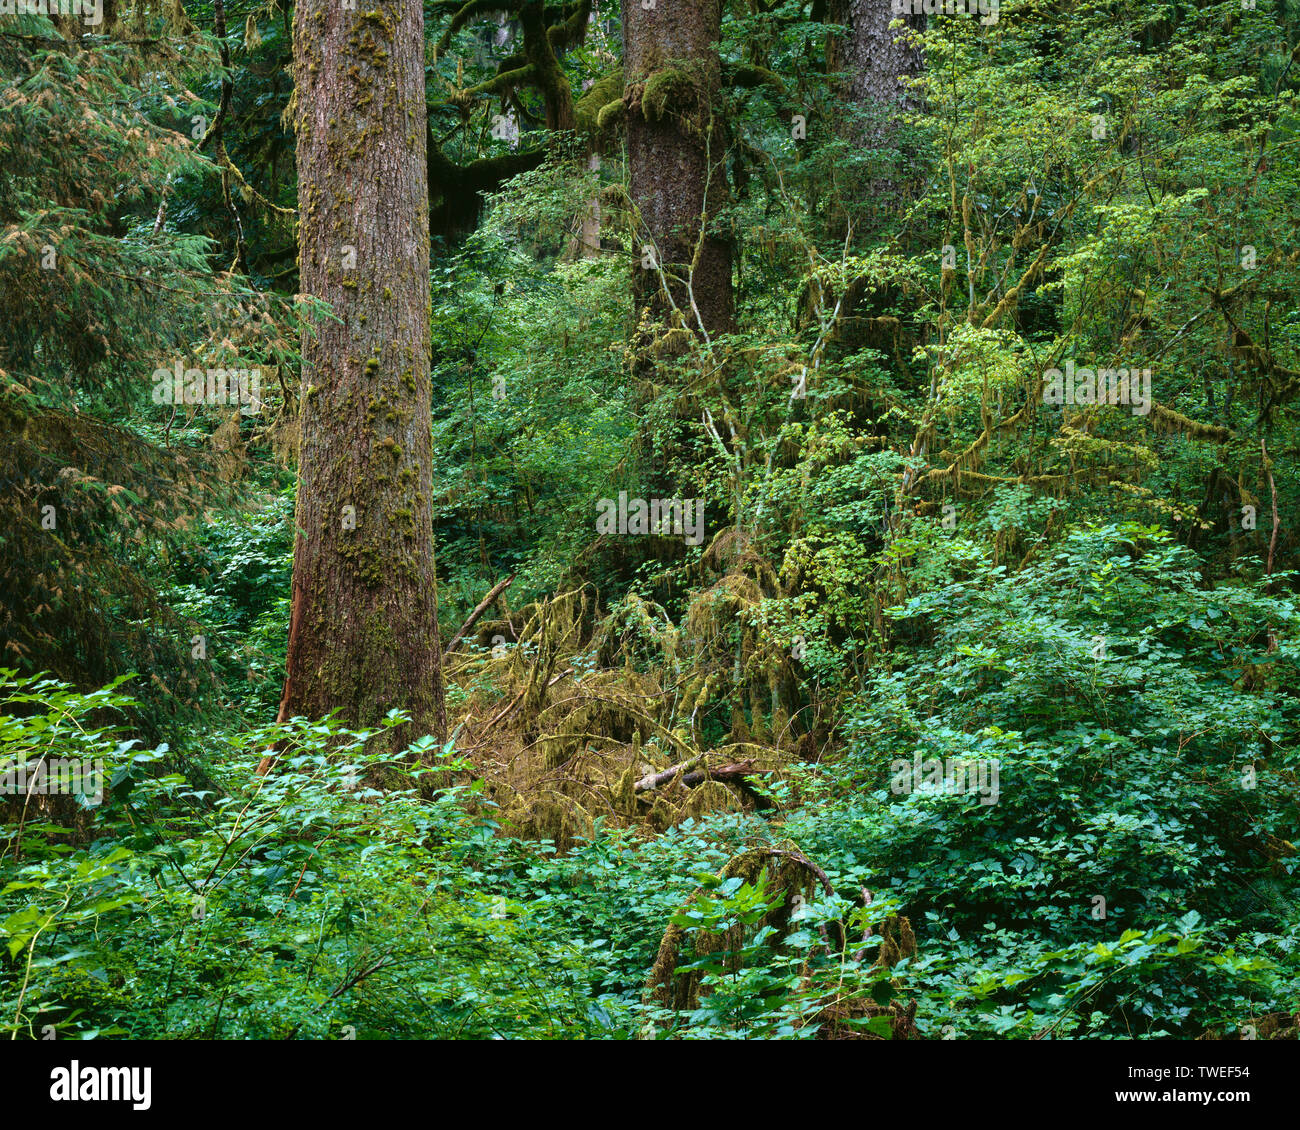 USA, Washington, Olympic National Park, Temperate coniferous rainforest with Sitka spruce and western hemlock; Hoh Rain Forest. - Stock Image